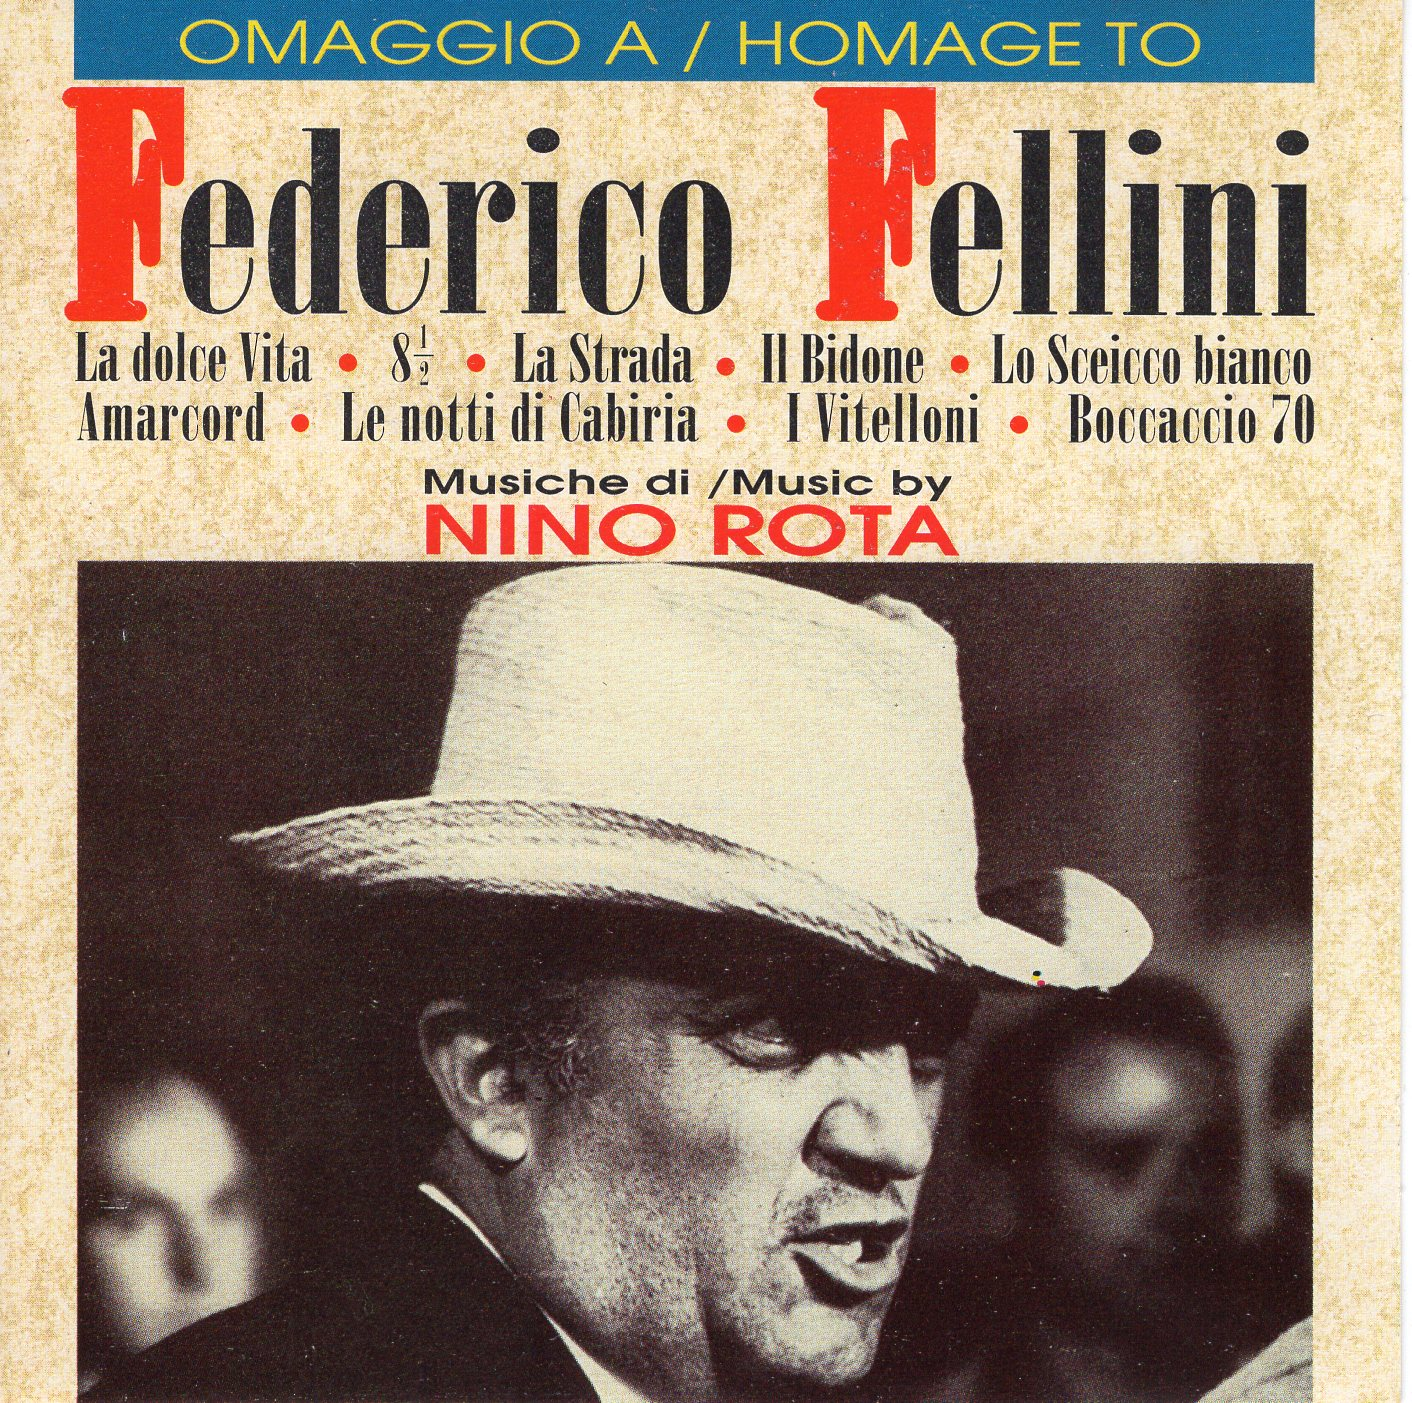 """Homage to Federico Fellini"" Nino Rota"